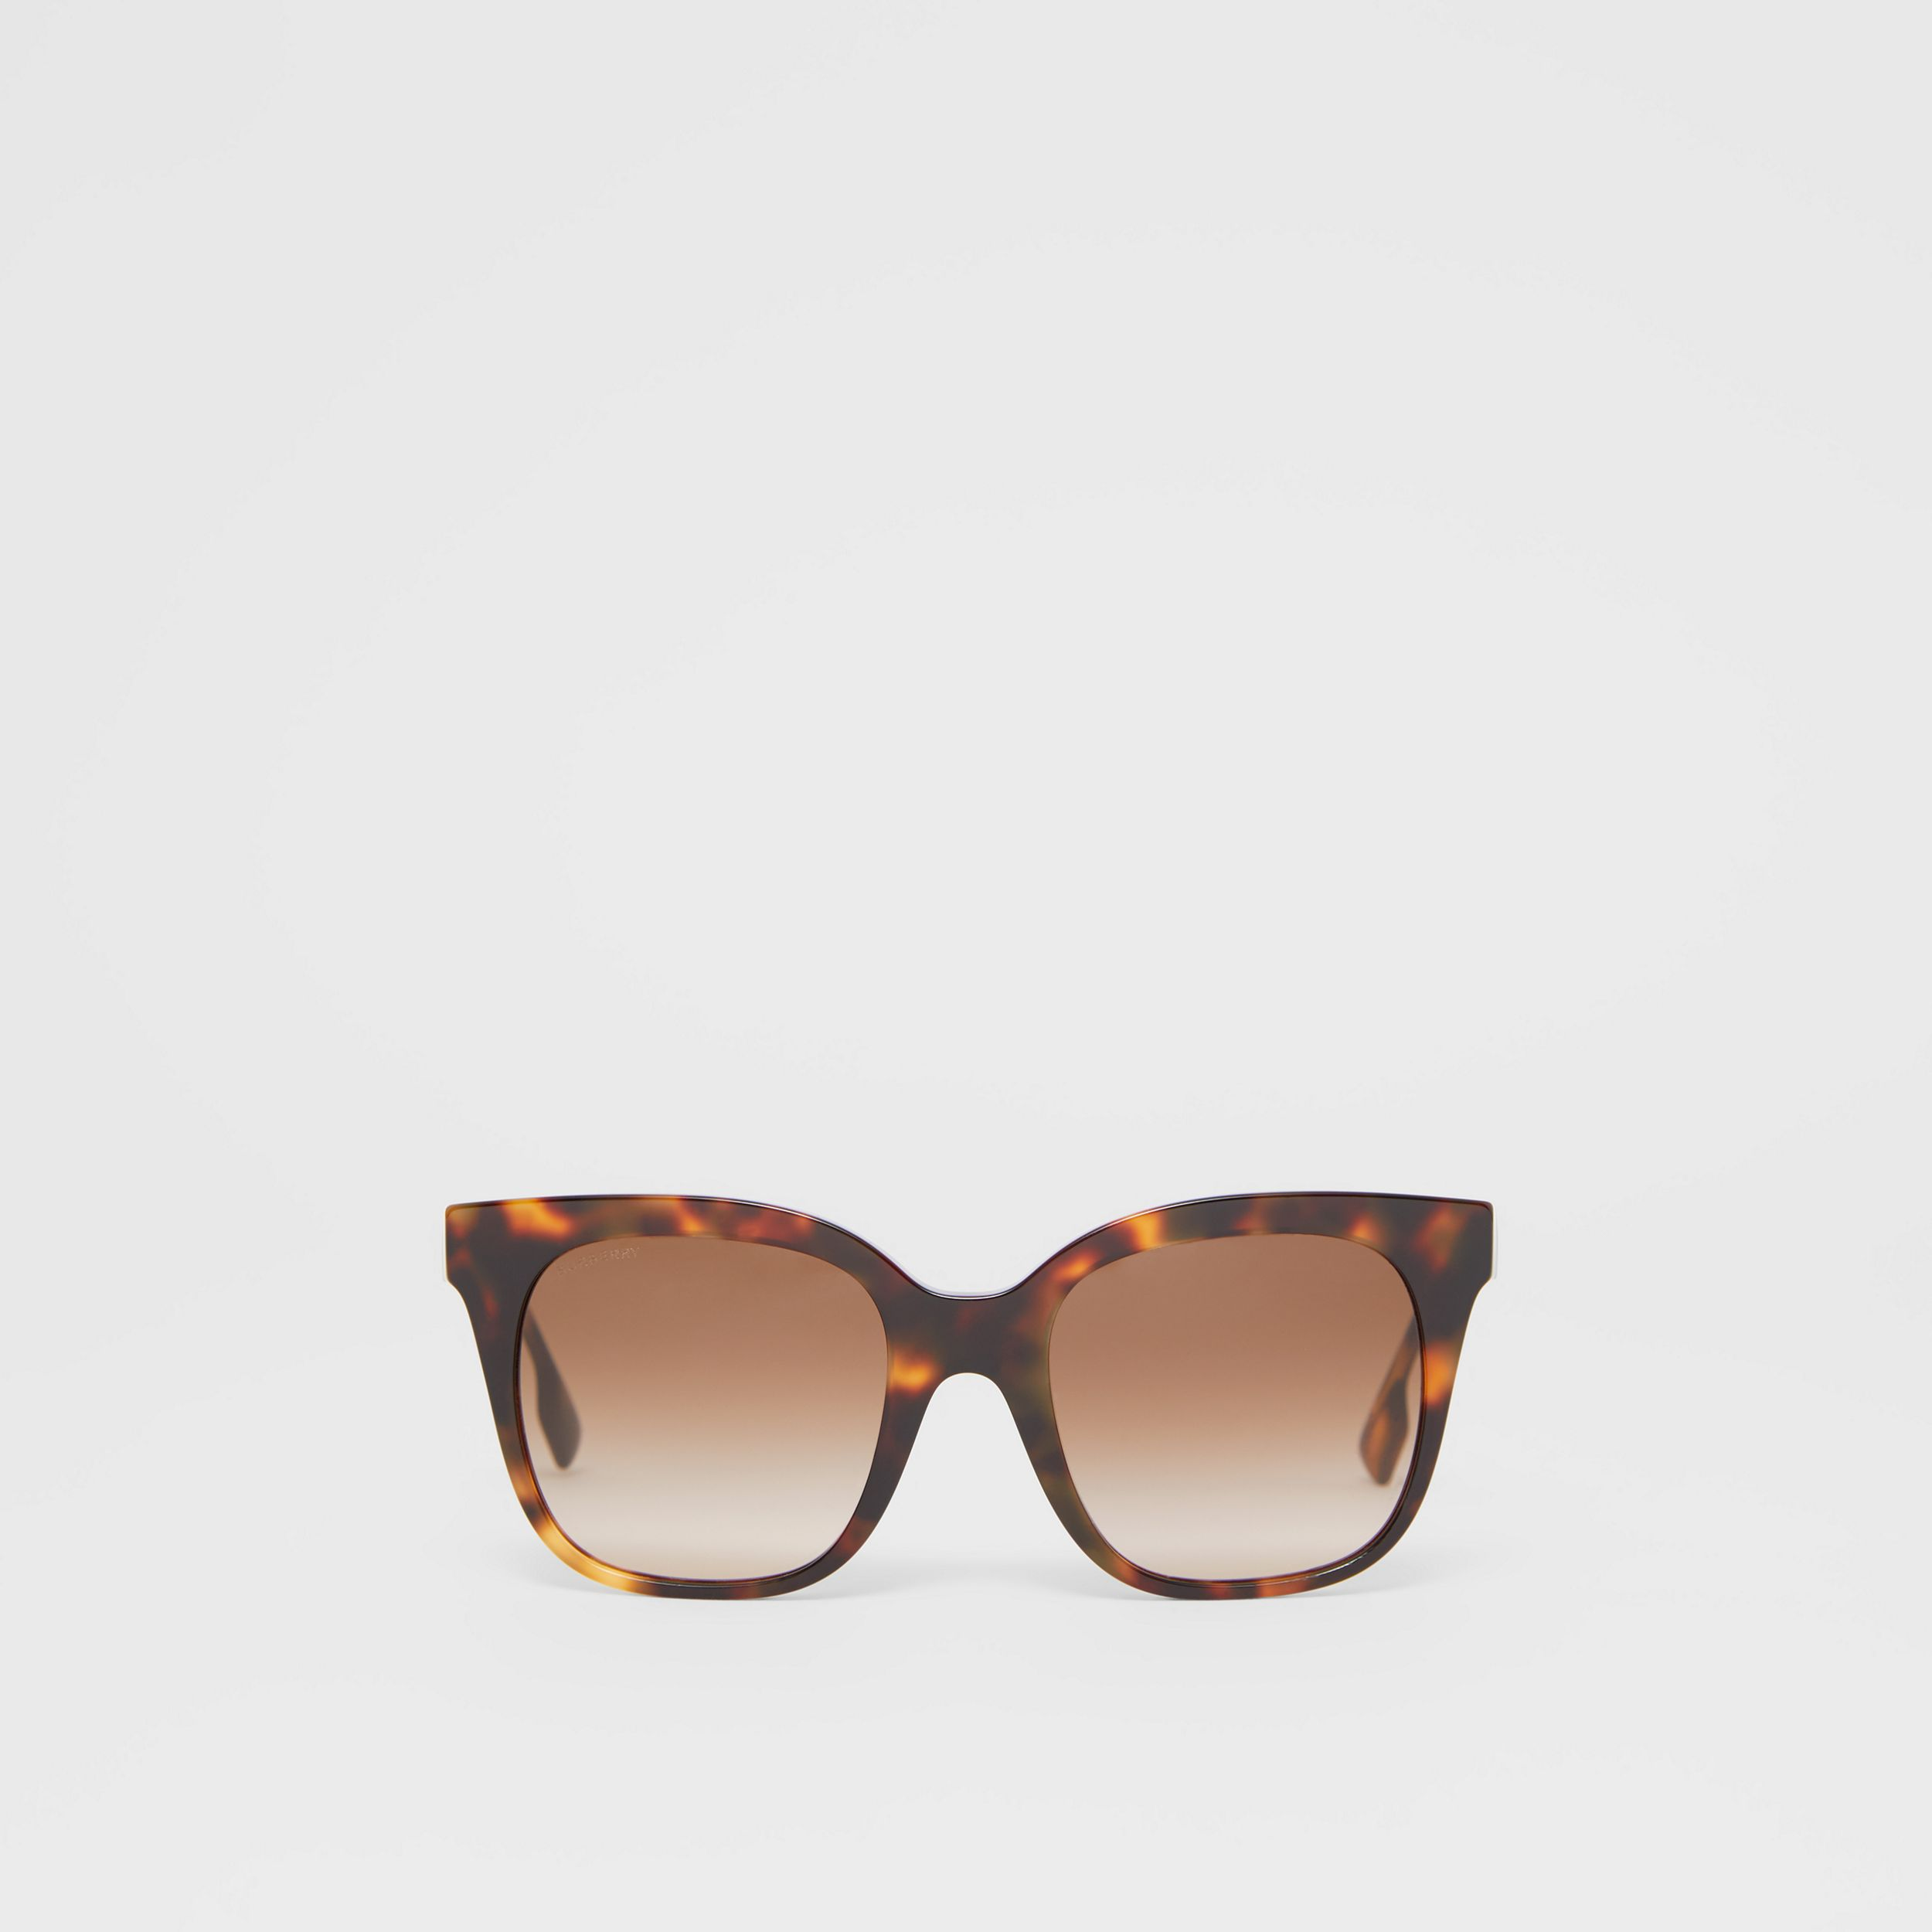 Butterfly Frame Sunglasses in Dark Amber Tortoiseshell - Women | Burberry - 1